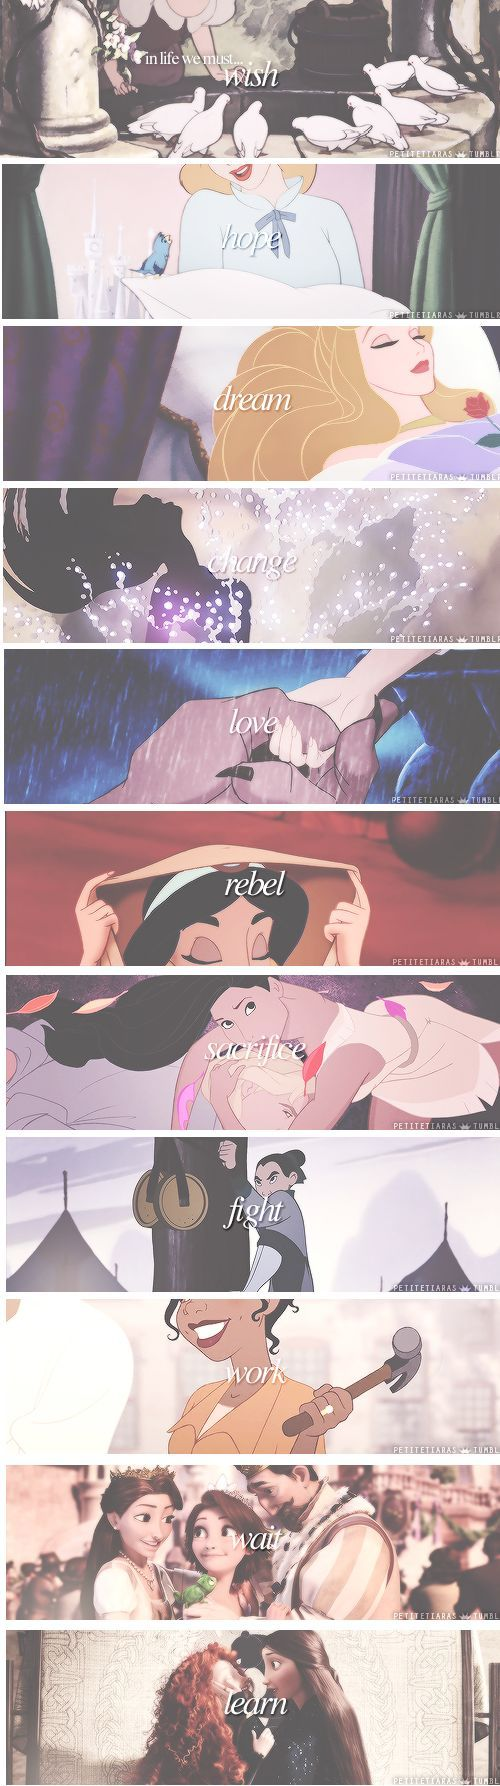 So many concentrate on the surface aspects of what being a Disney Princess is, but it just shows how incapable they are of seeing what is being said on a deeper level. Disney Lessons to Live By